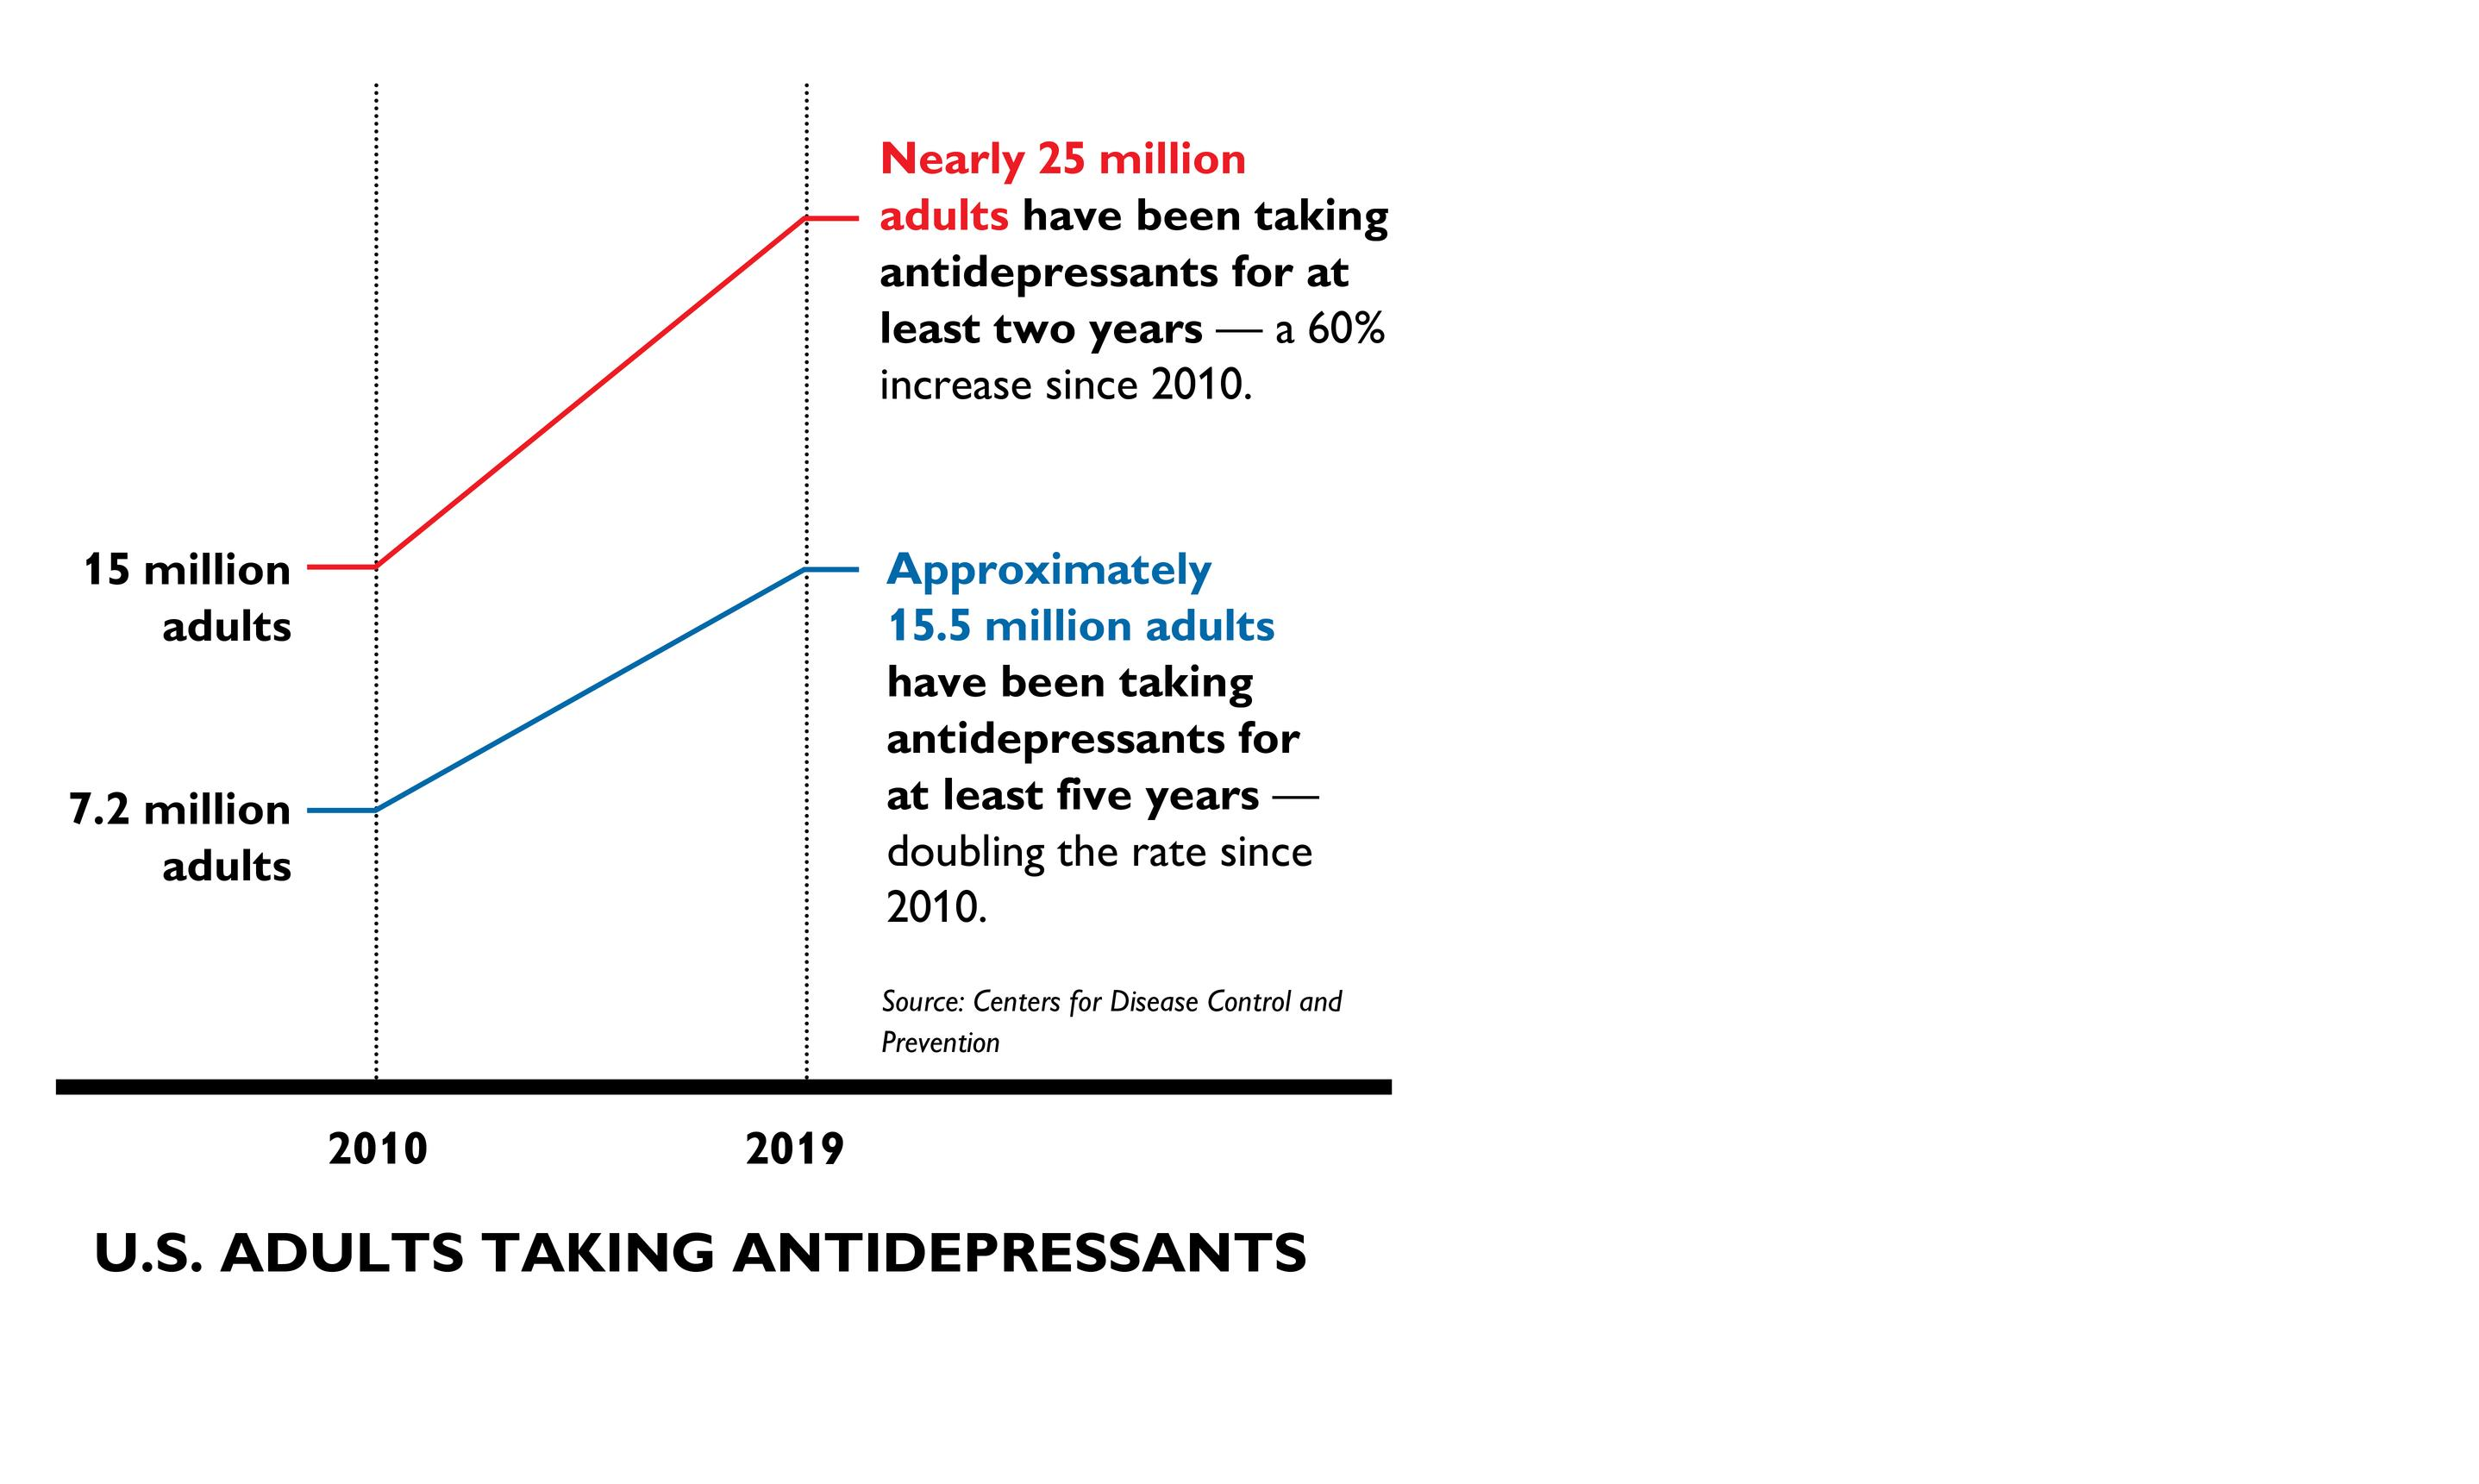 U.S. Adults taking antidepressants15 million adultsNearly 25 million adults have been taking antidepressants for at least two years — a 60% increase since 2010. 7.2 million adultsApproximately 15.5 million adults have been taking antidepressants for at least five years — doubling the rate since 2010.